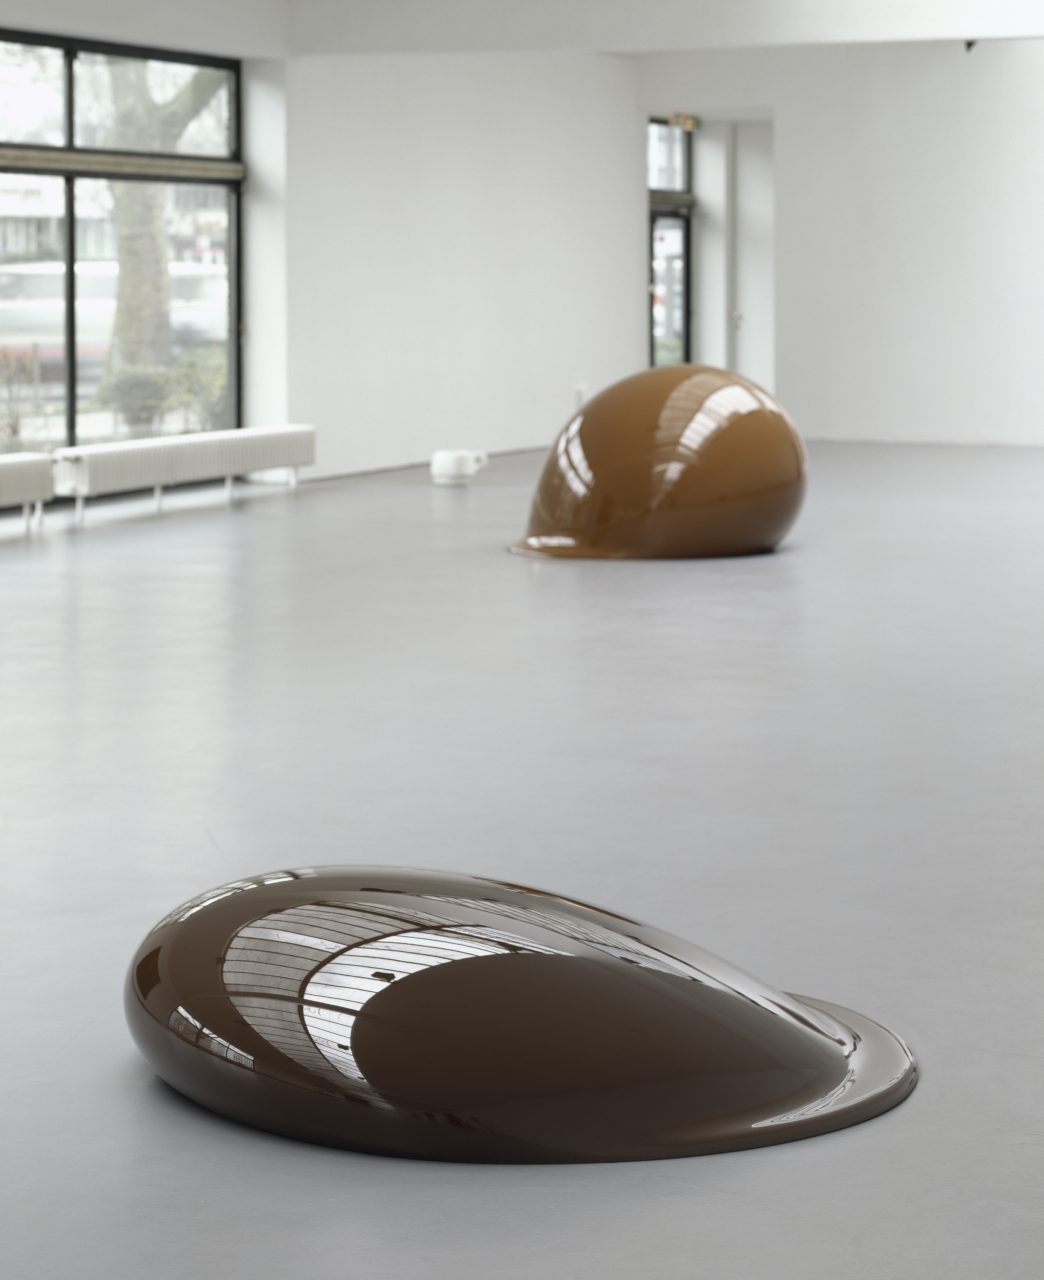 in the front: Untitled | 1994 | polyester resin | 38 x 160 x 149 cm | edition of 3 | exhibition view Kölnischer Kunstverein | Cologne 2001| photo: Jörg Hejkal